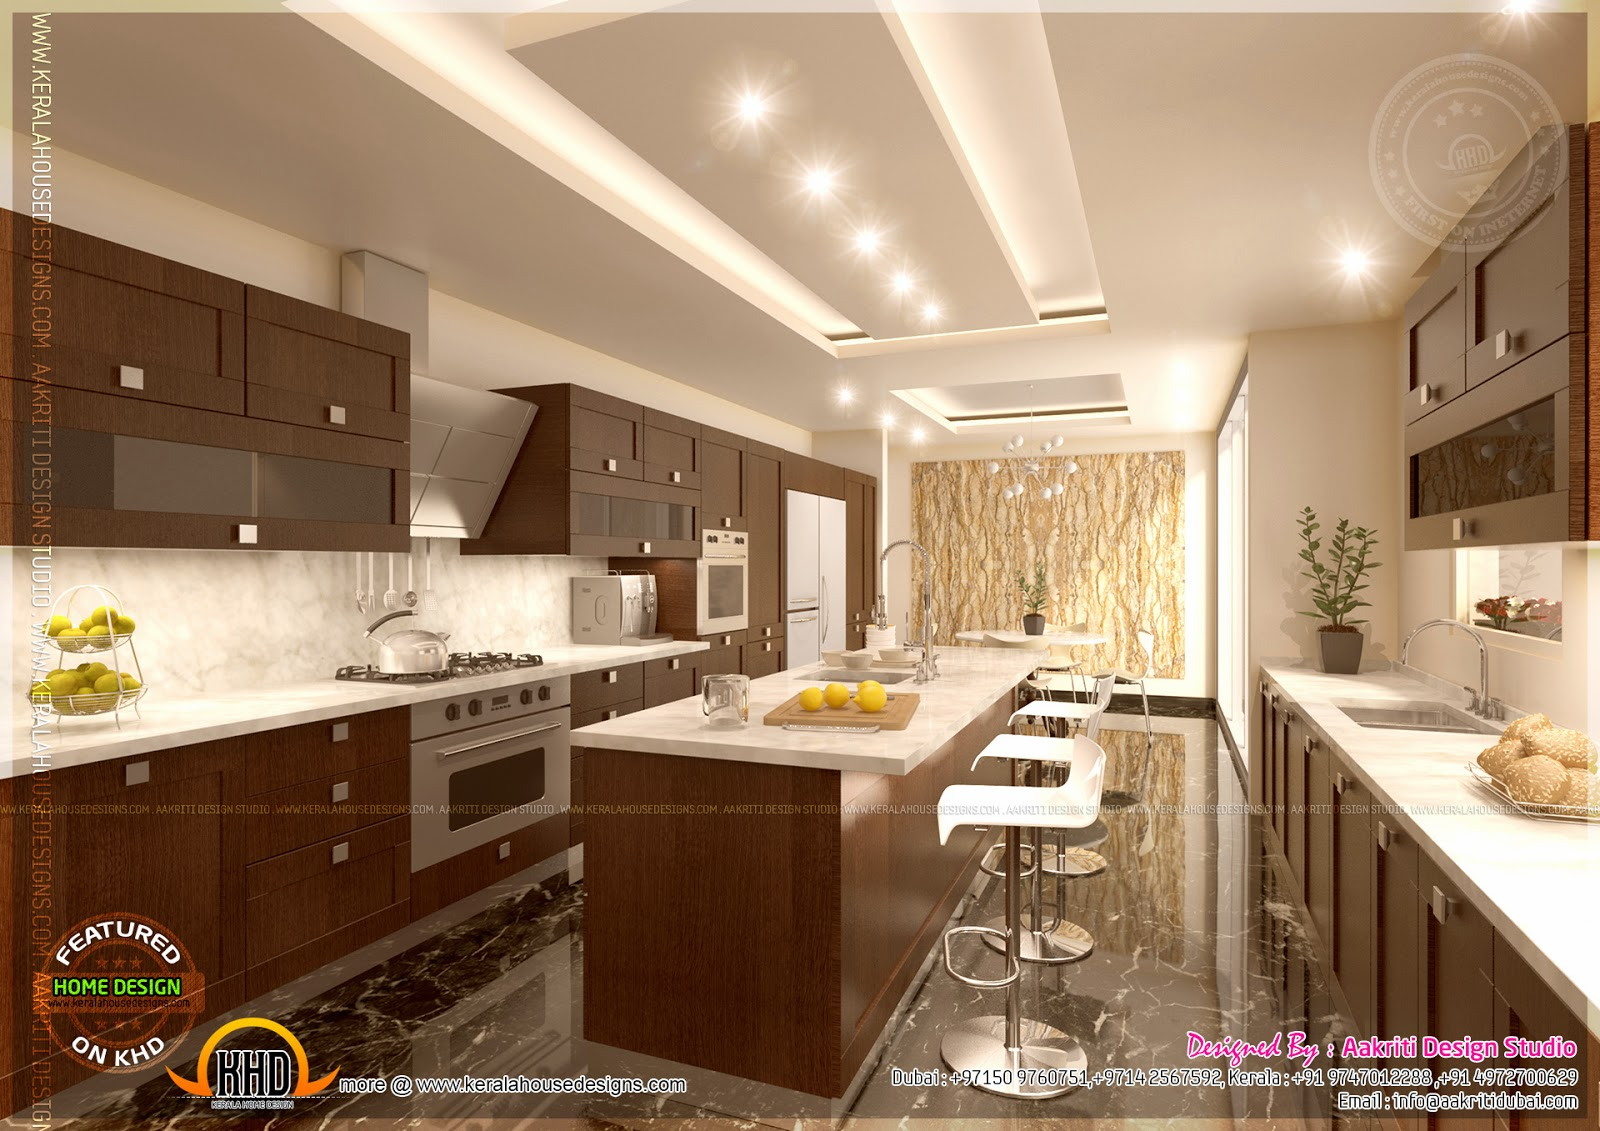 Kitchen designs by aakriti design studio kerala home for New kitchen designs in kerala